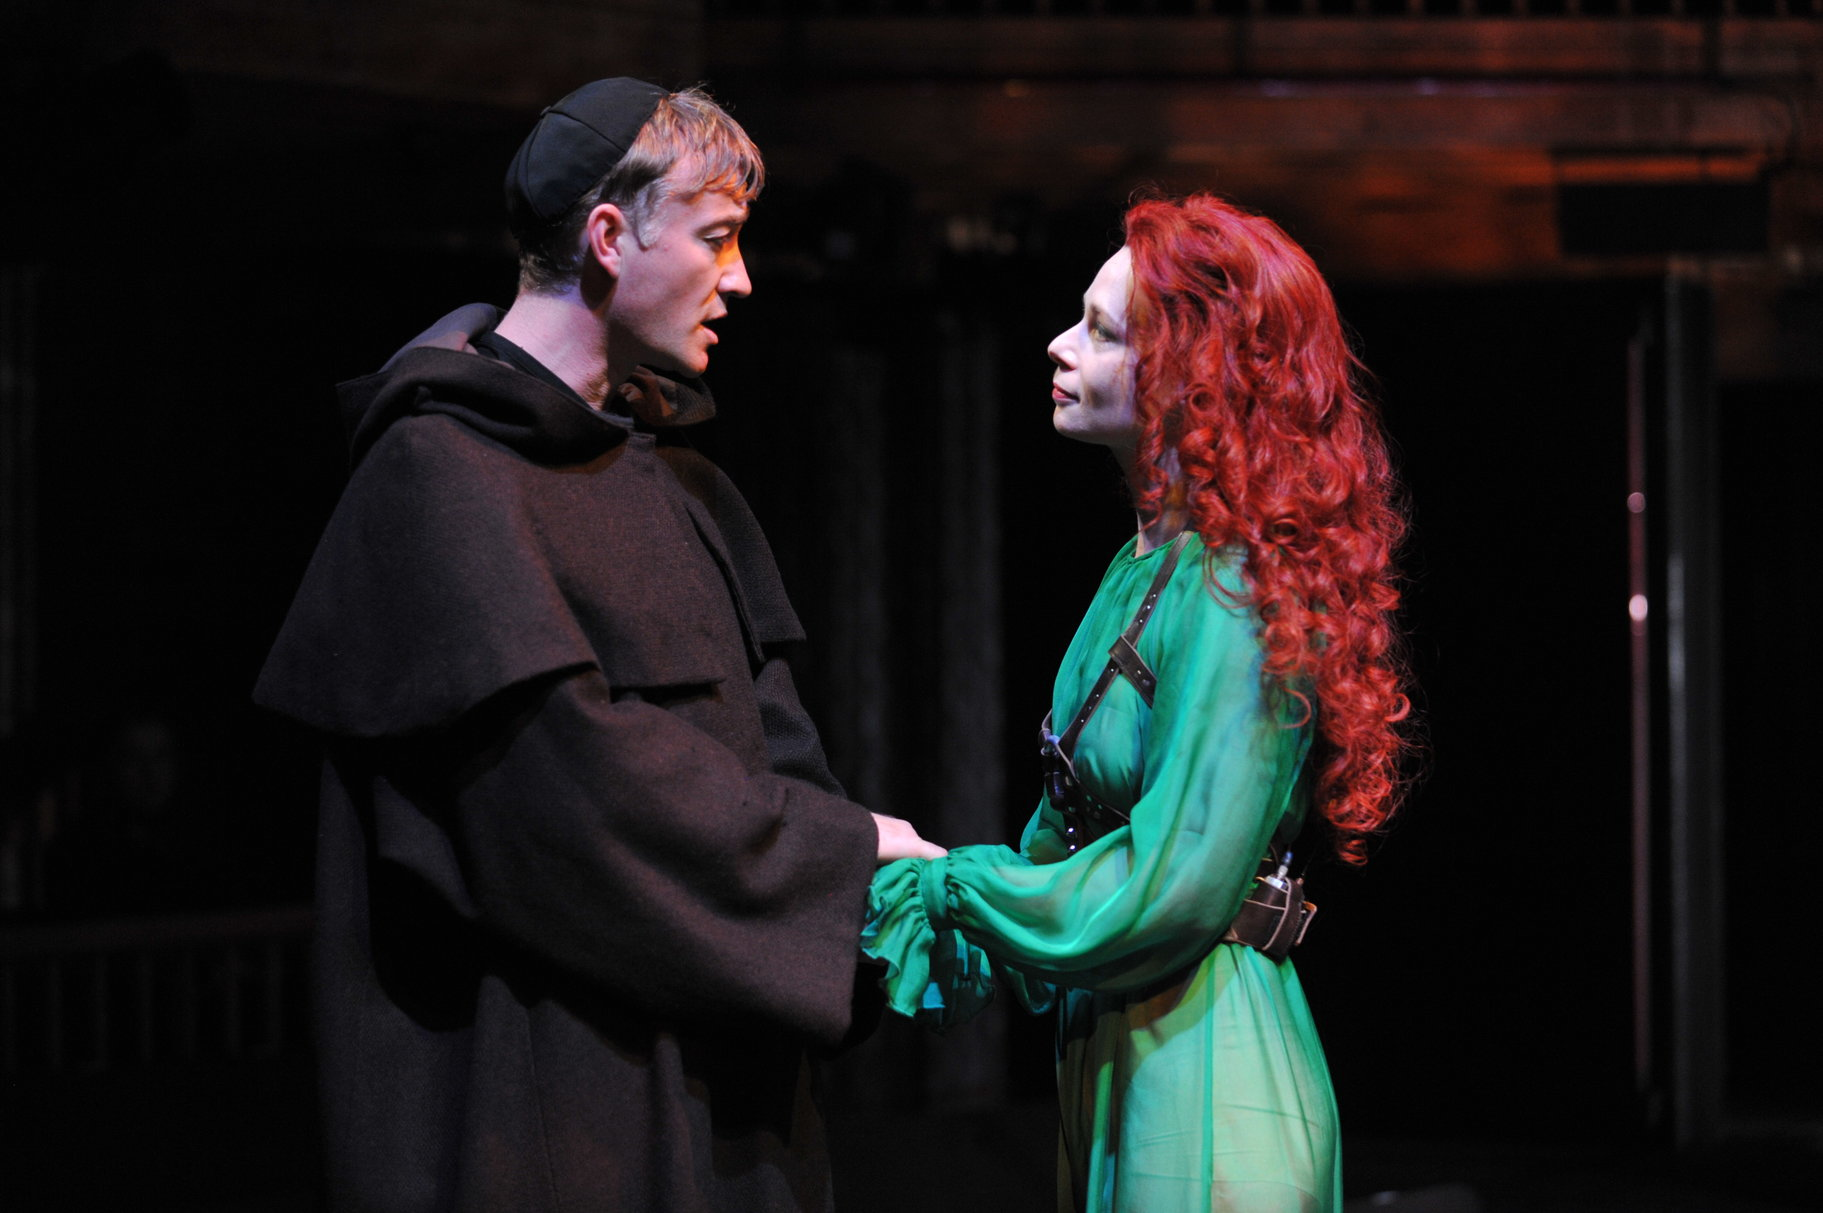 A man dressed as a monk holds the hands of a woman with bright red hair and a luminous green dress.